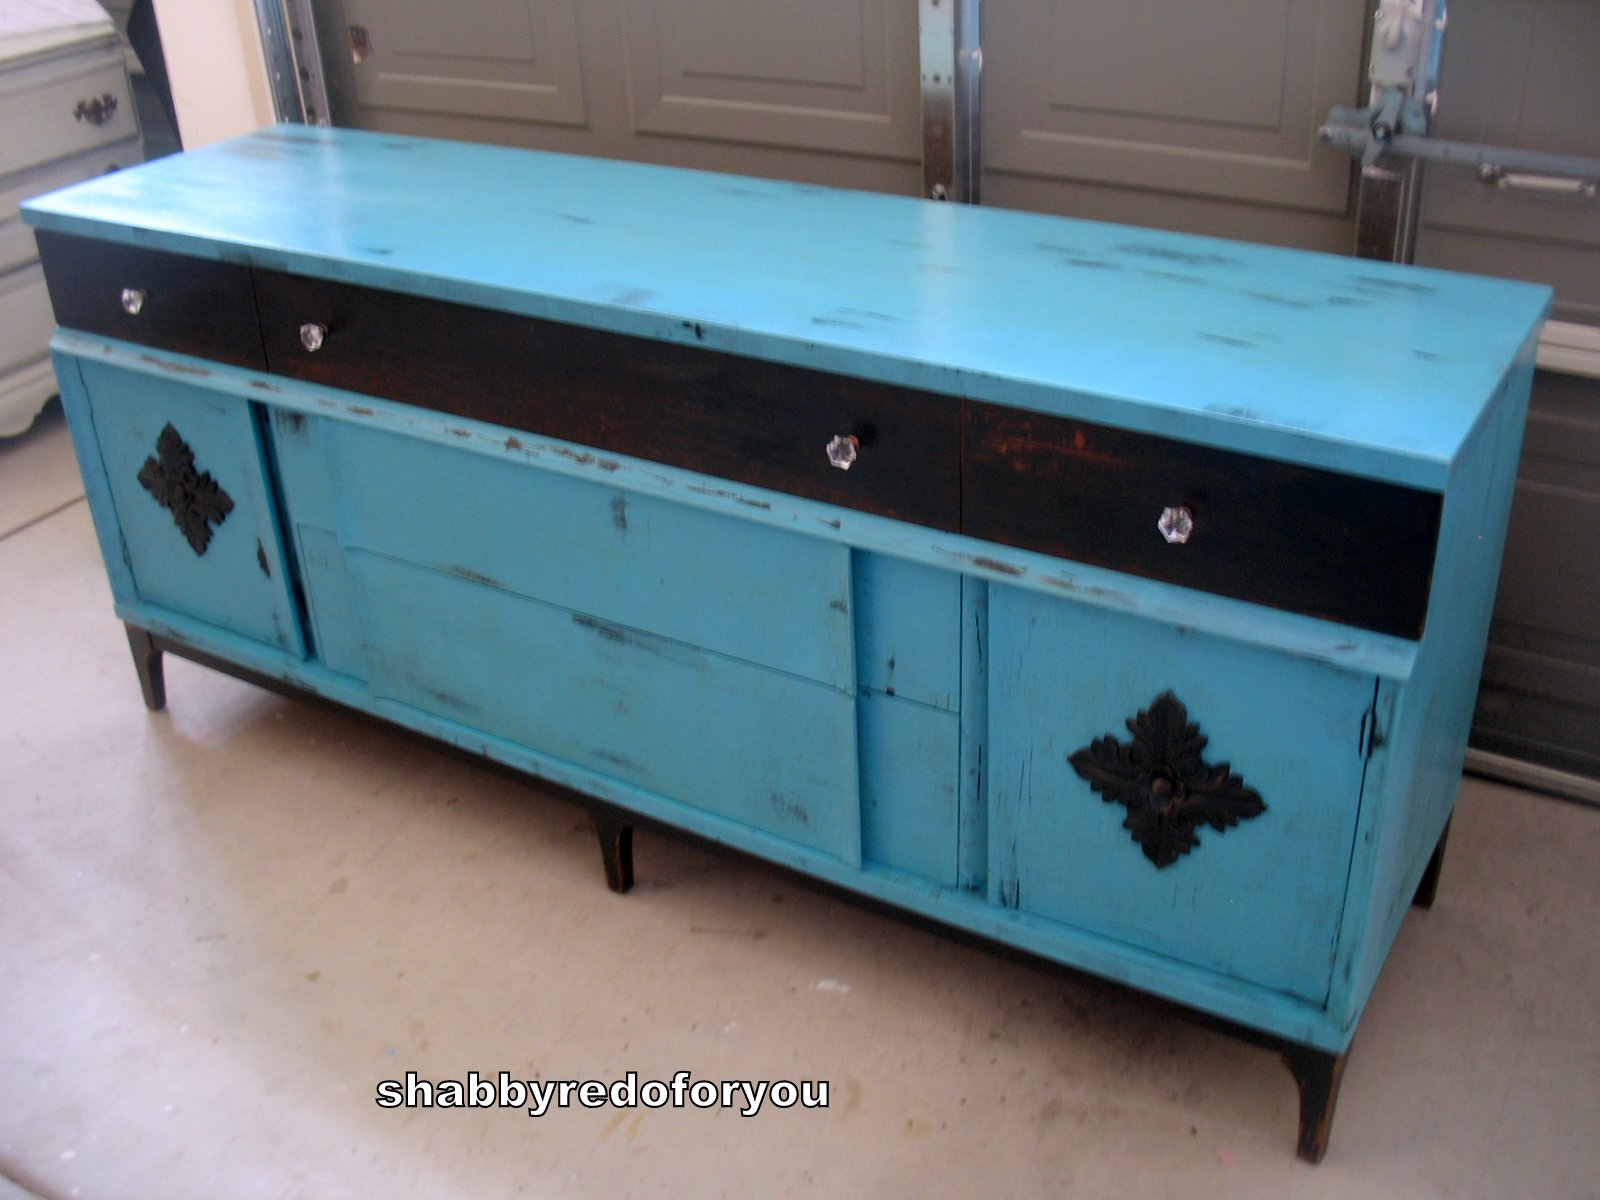 glass knobs and 2 wood appliques gave it a new look cadenza furniture